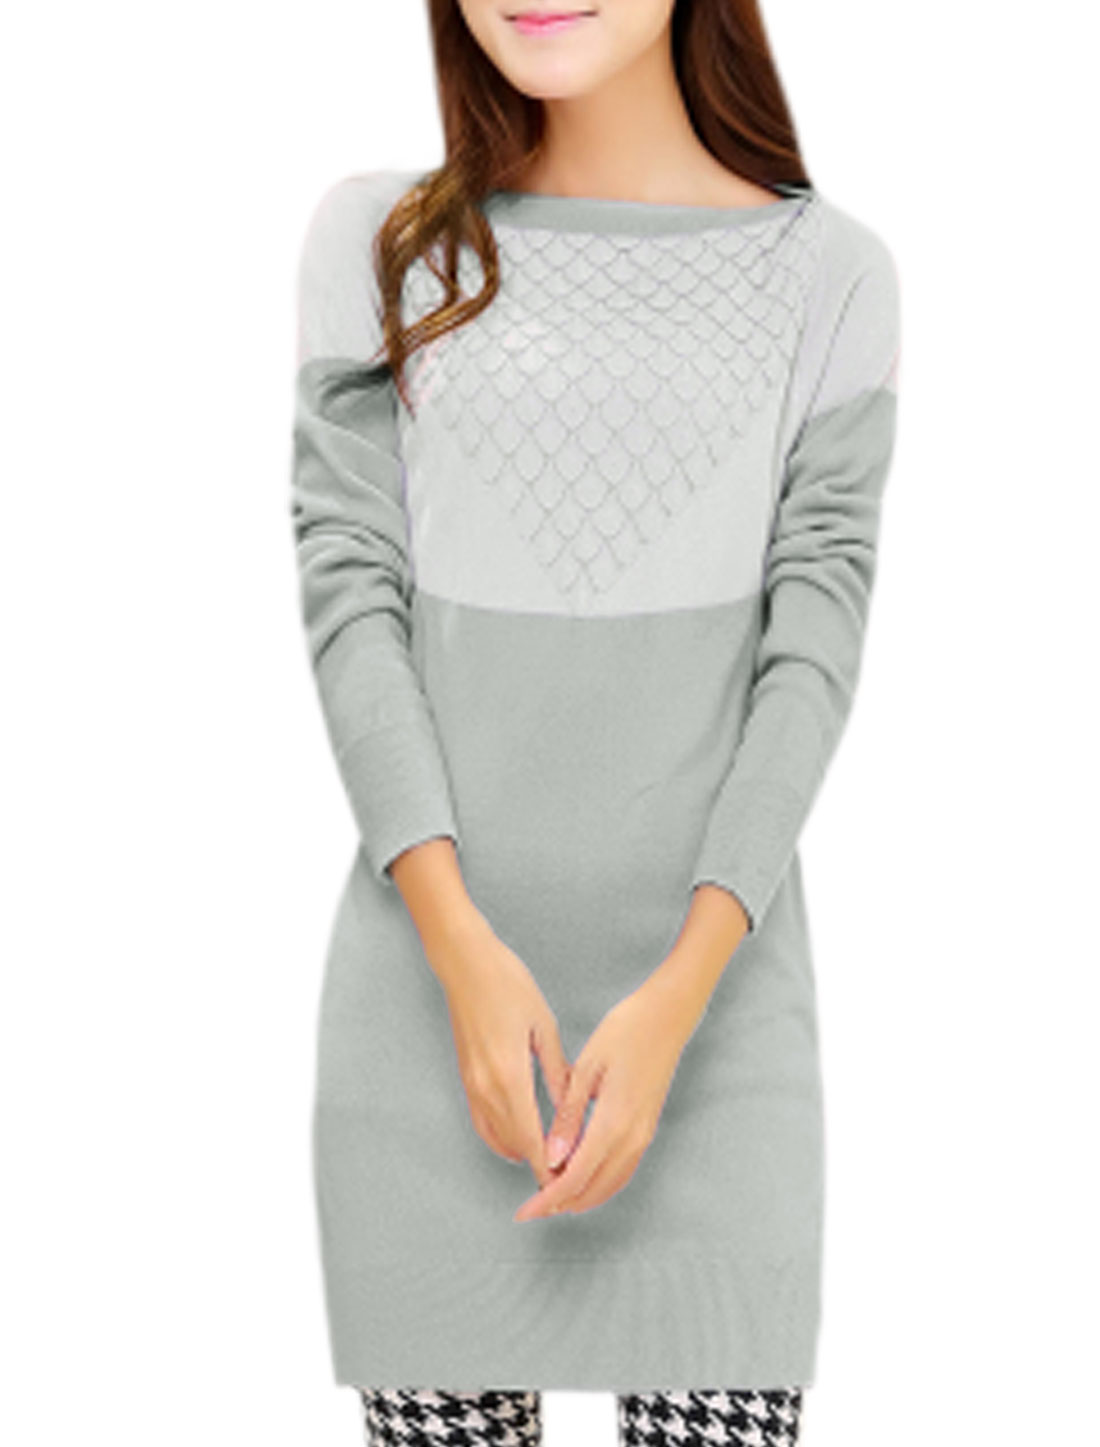 Women Contrast Color Scalloped Textured Design Tunic Knit Top Light Gray White S